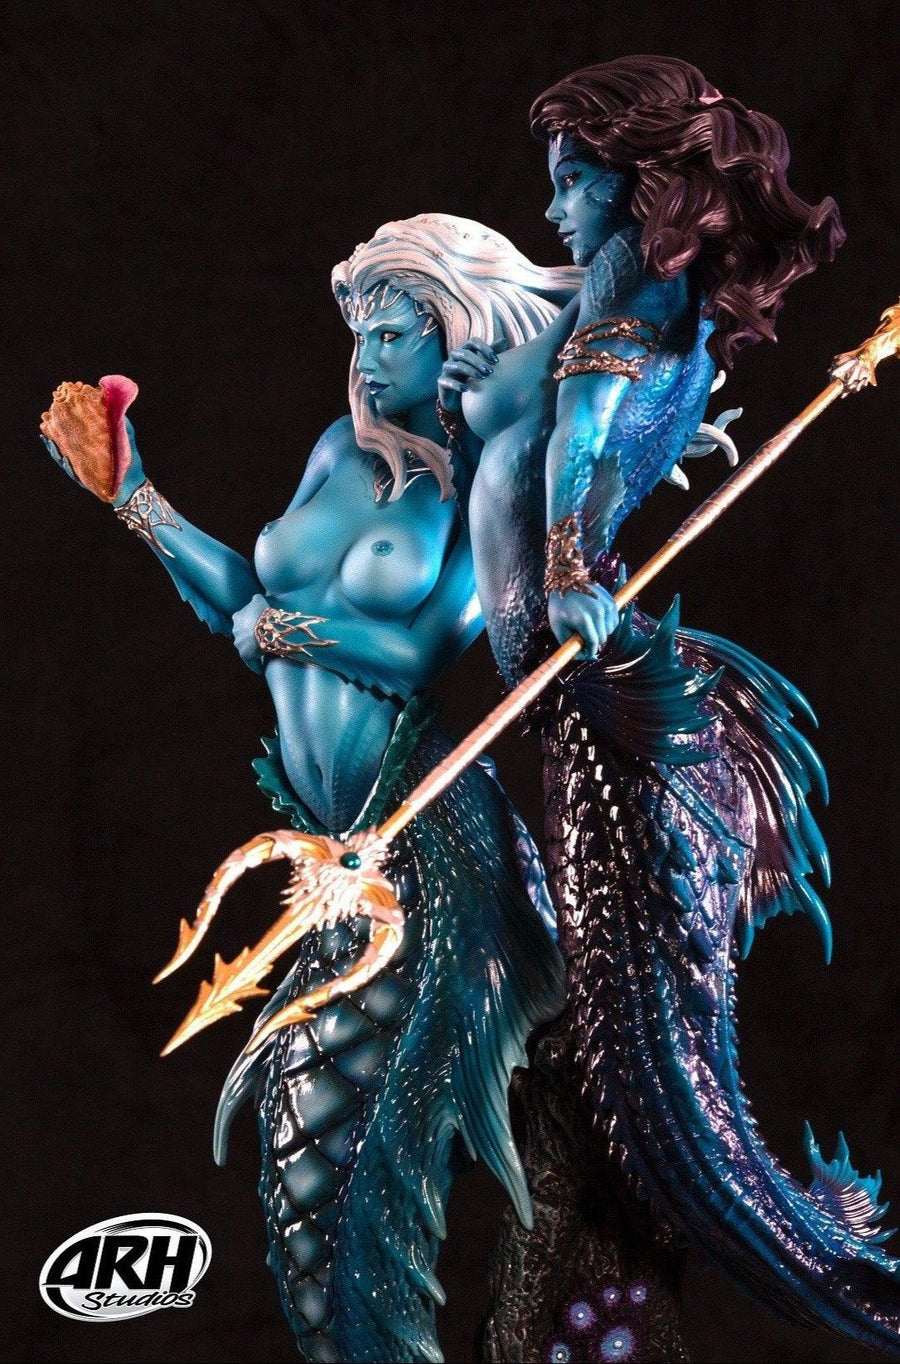 Twin Mermaids 1/4 Scale Statue ARH Studios